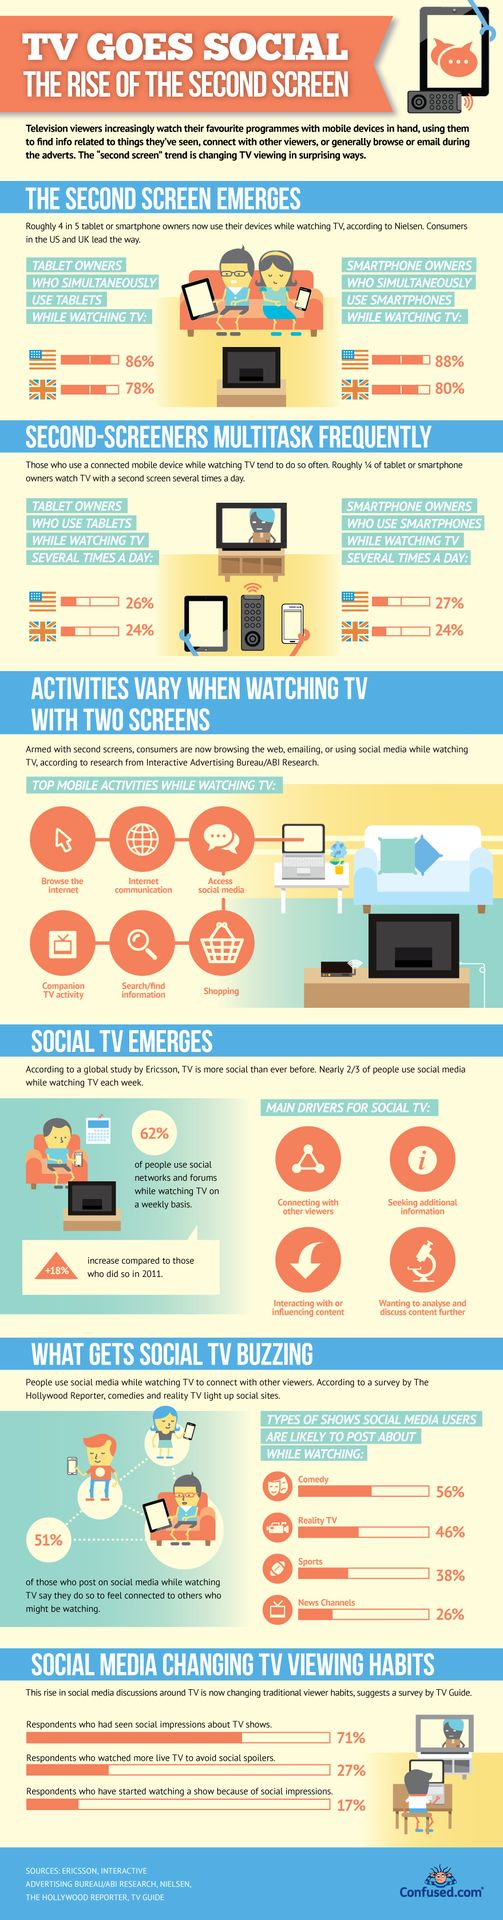 TV goes social #infographic #wisemarketplace #infographics